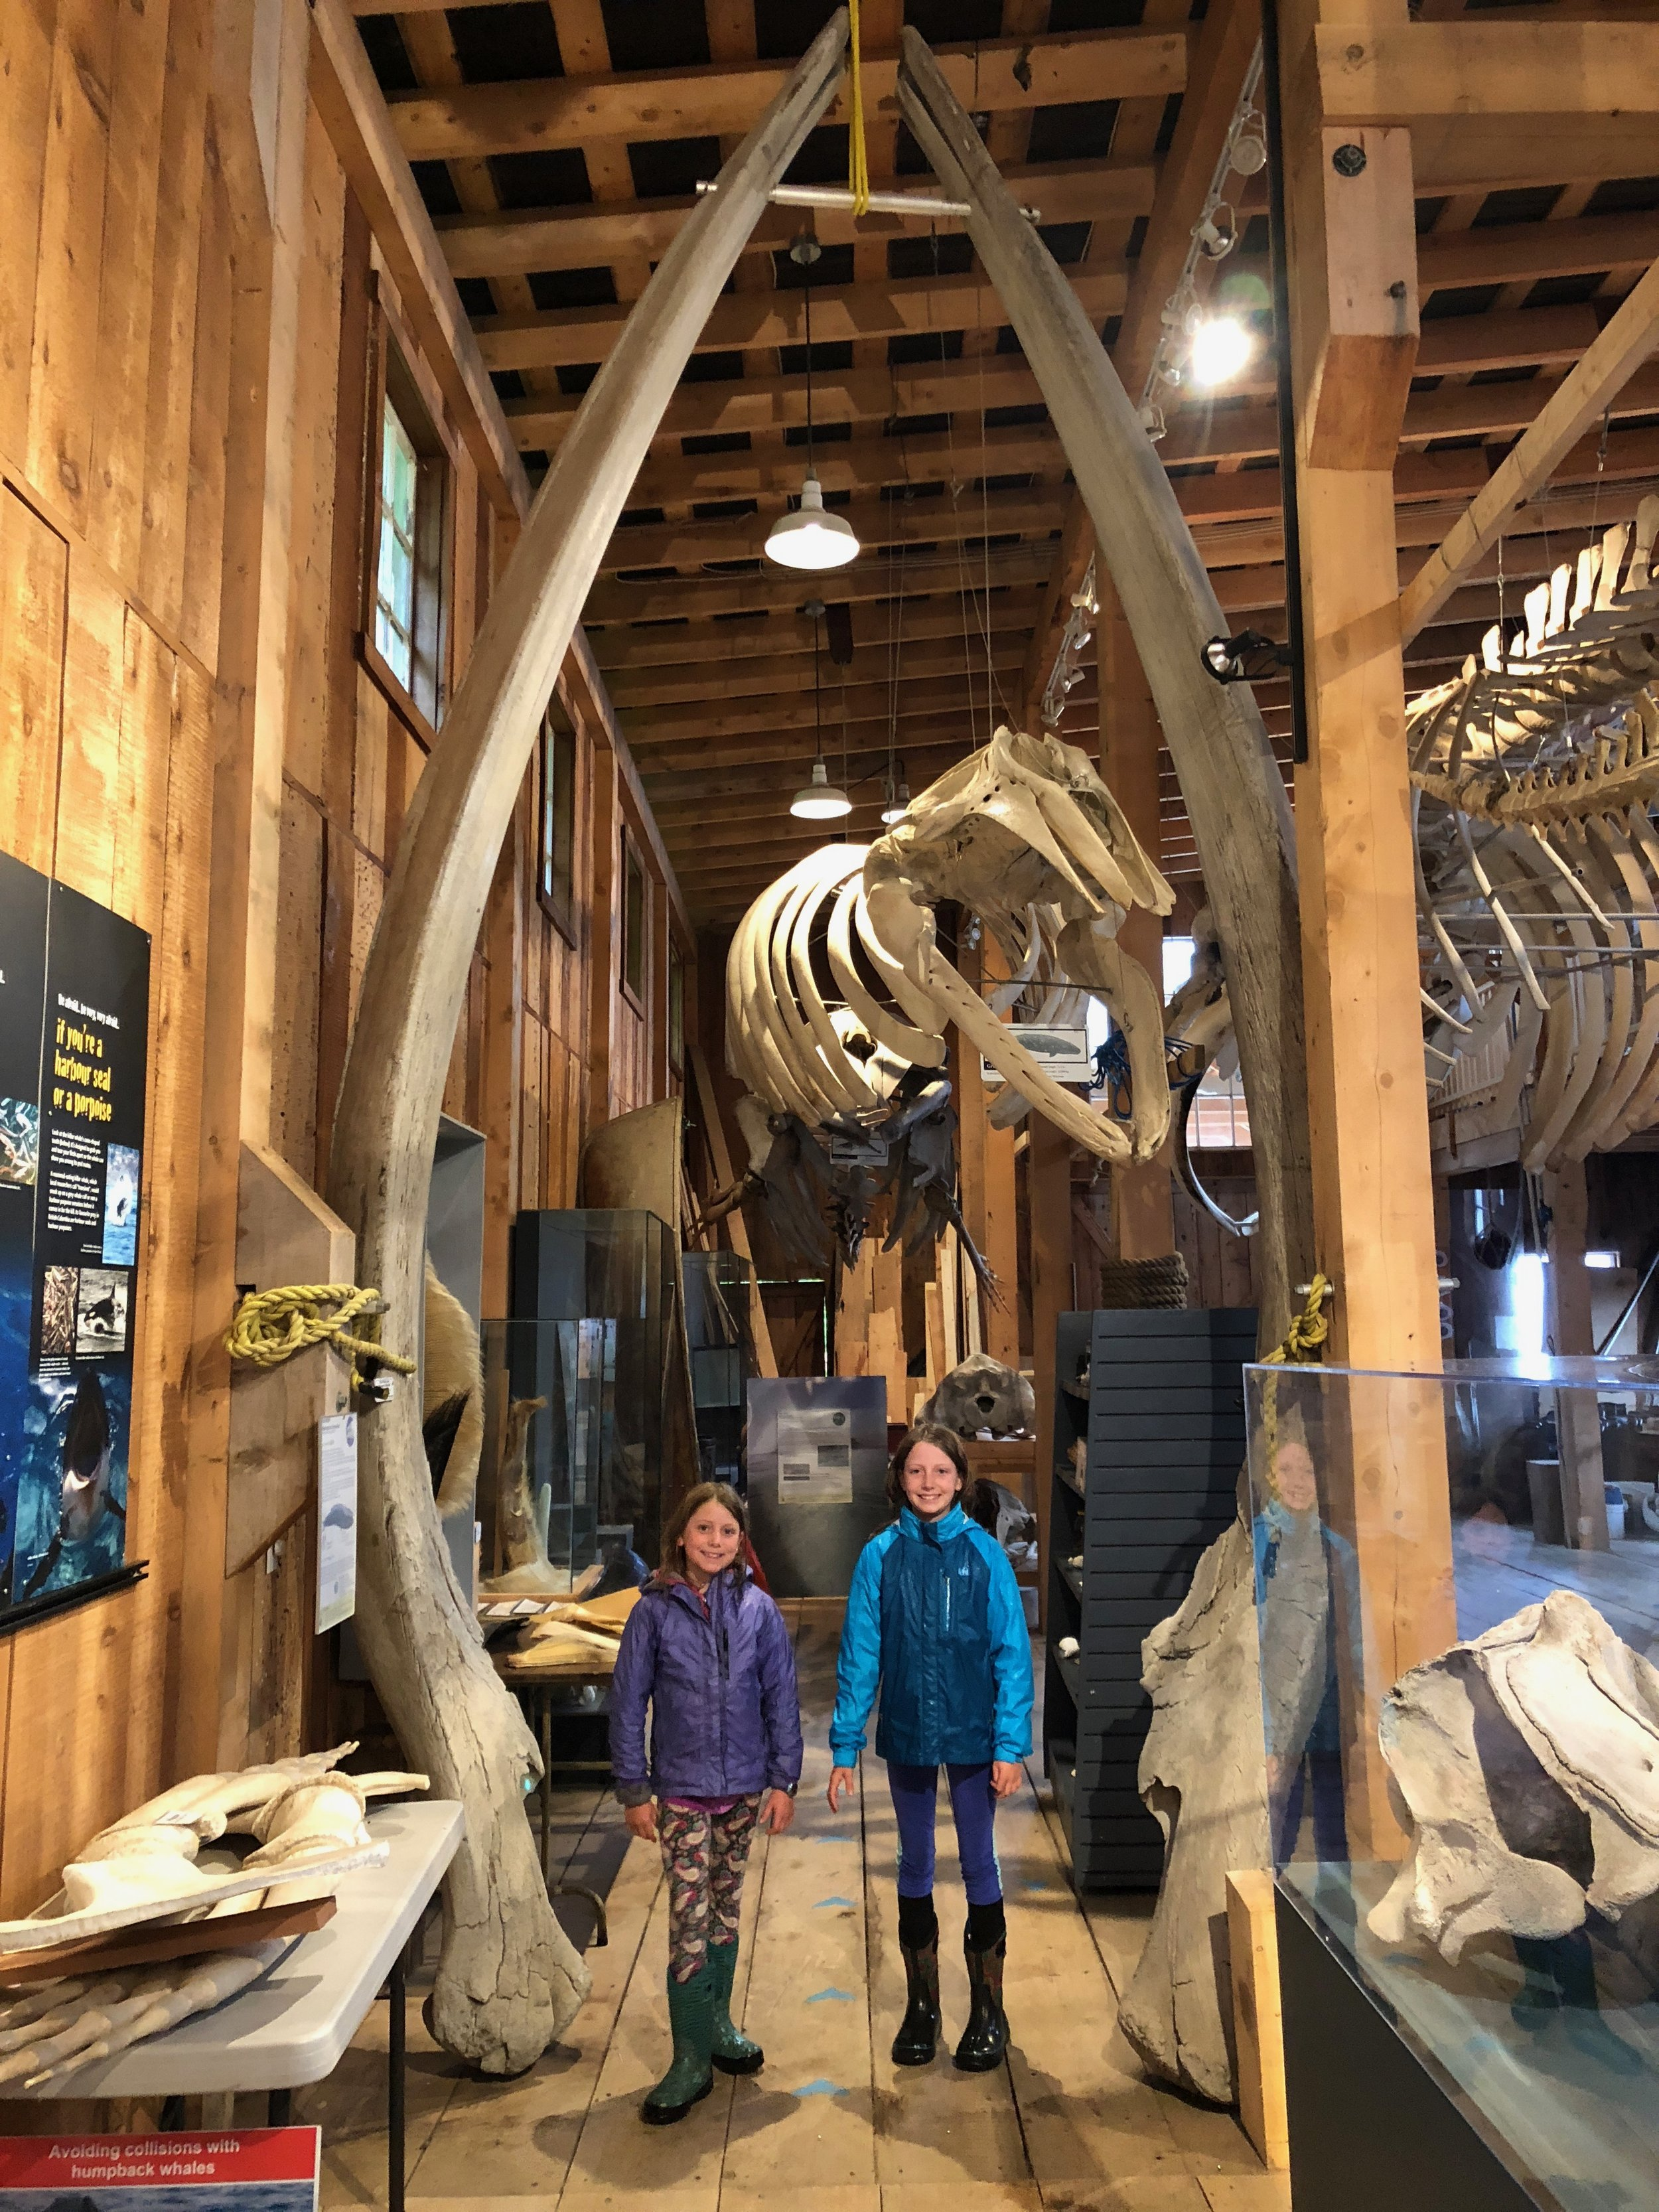 The girls at the Killer Whale Interpretive Center staring in the the middle of two ribs of a whale